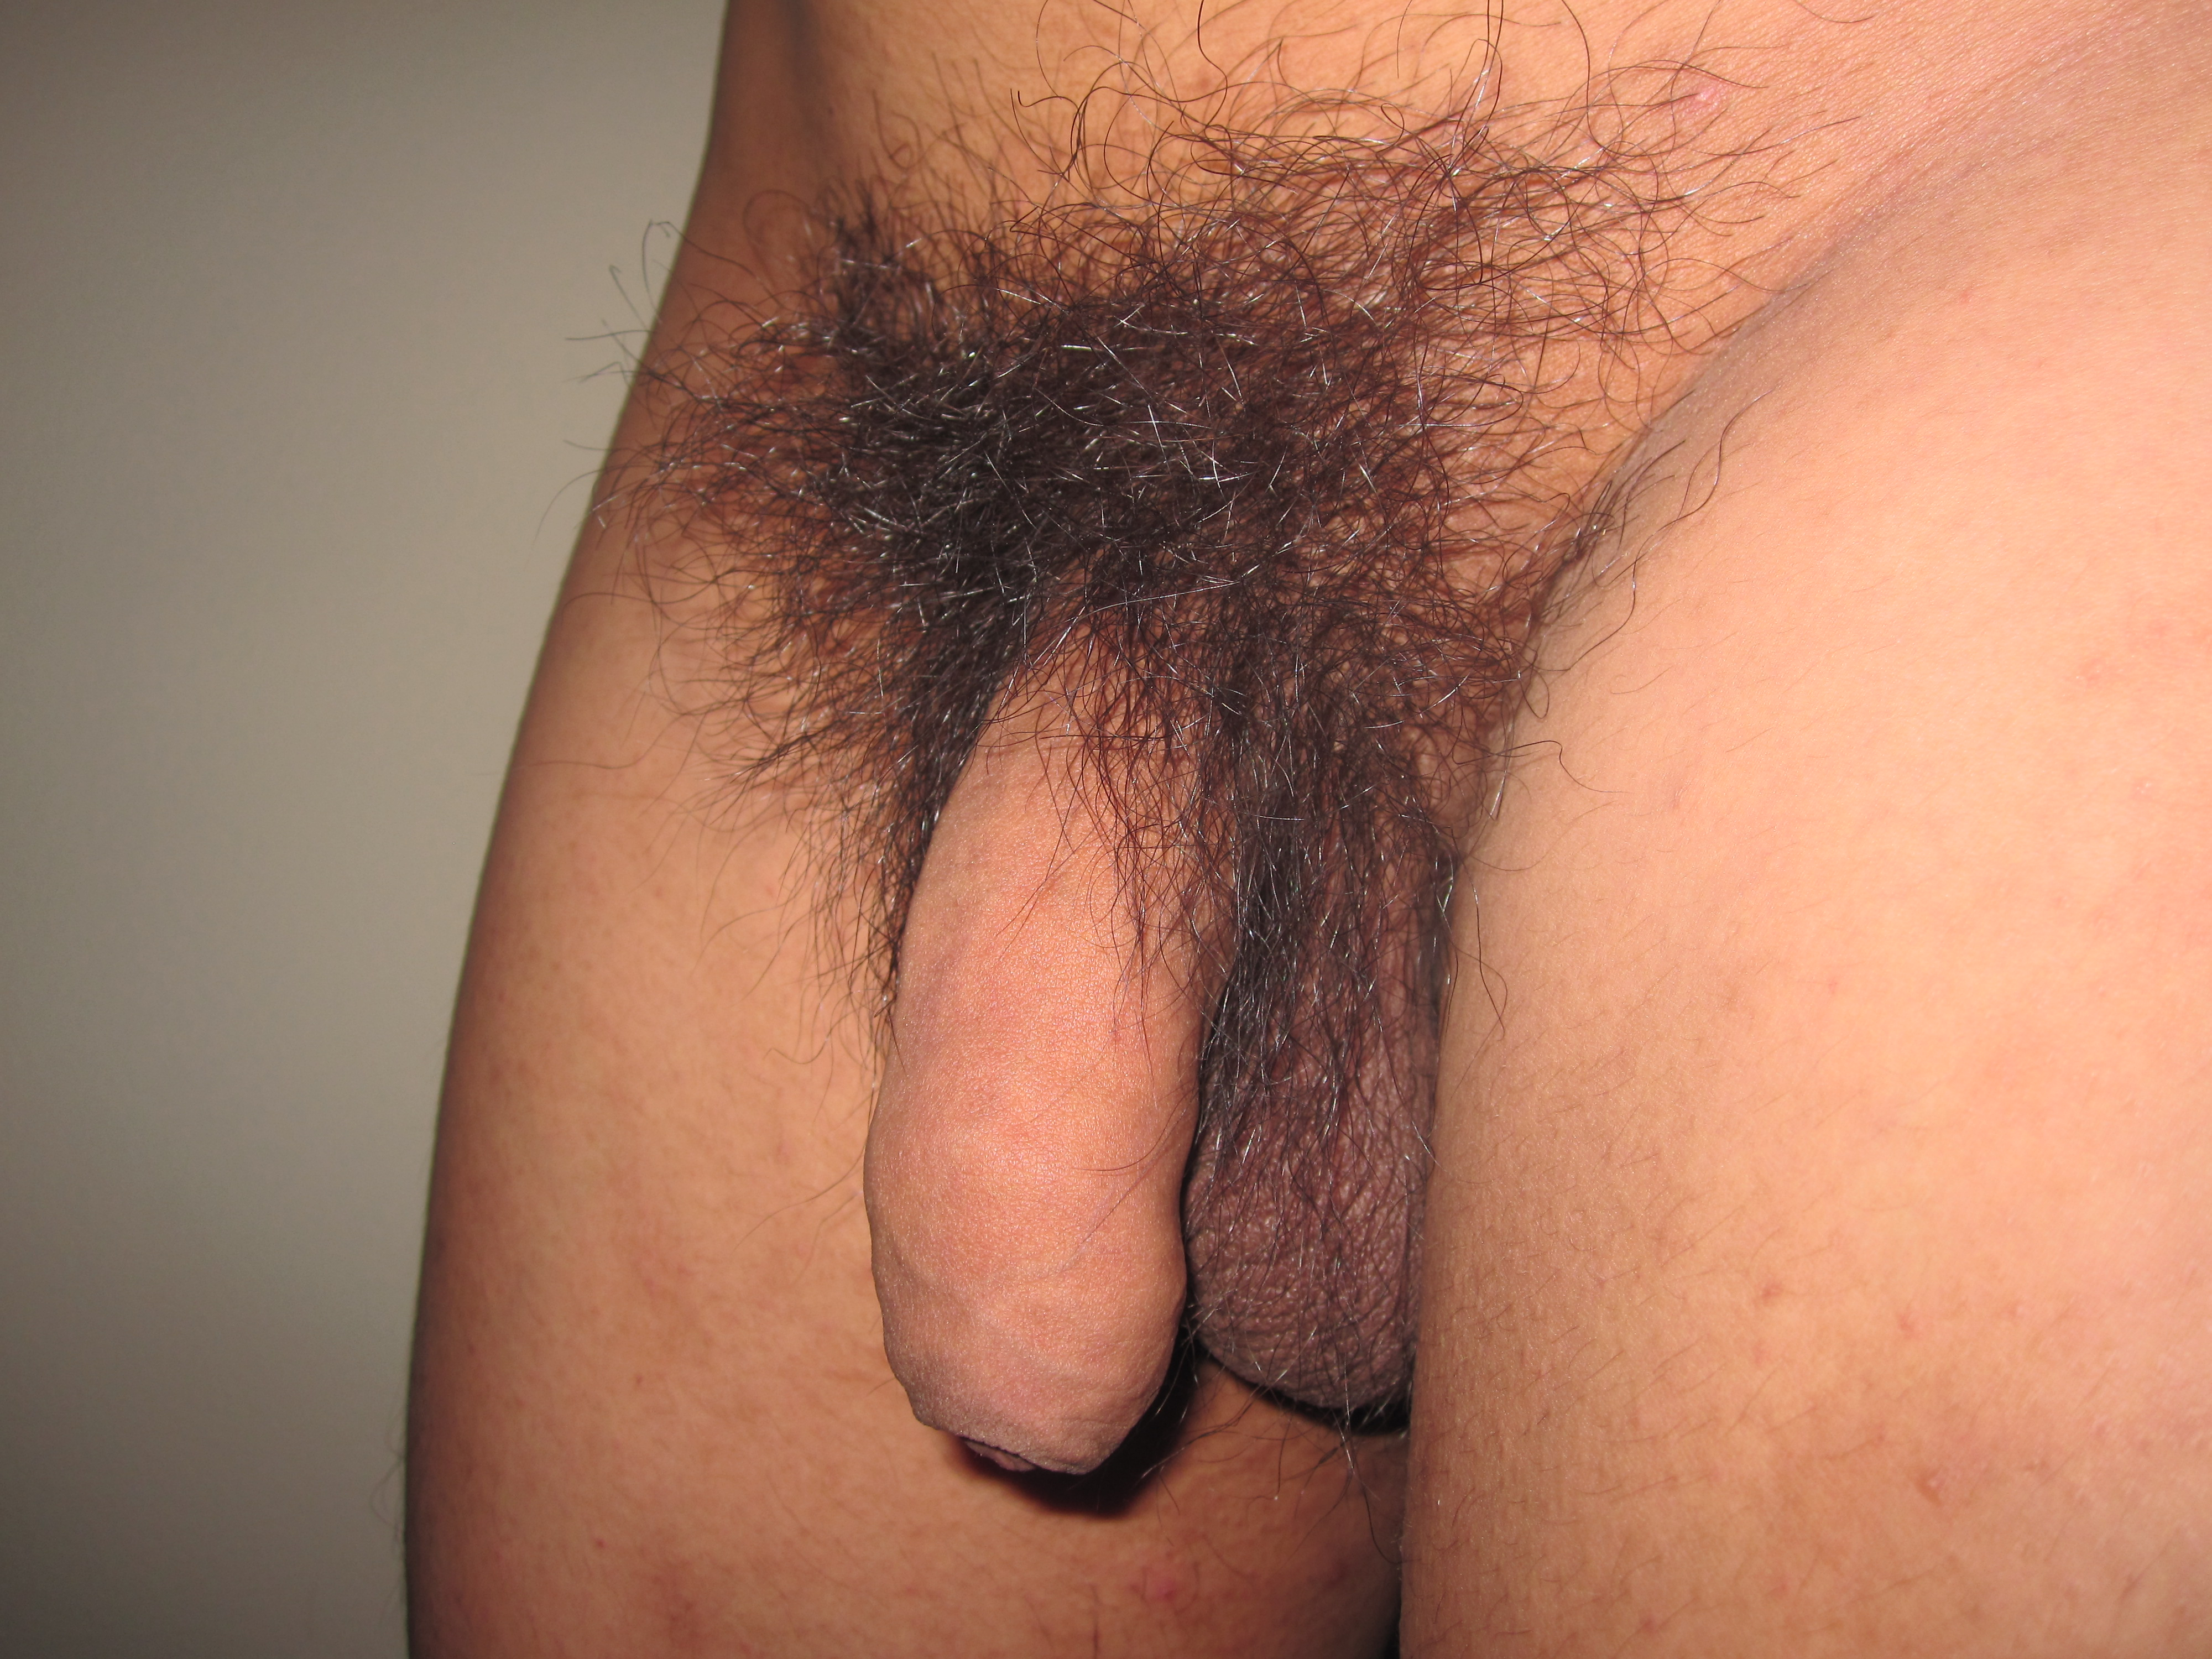 penis pictures with pubic hair jpg 422x640